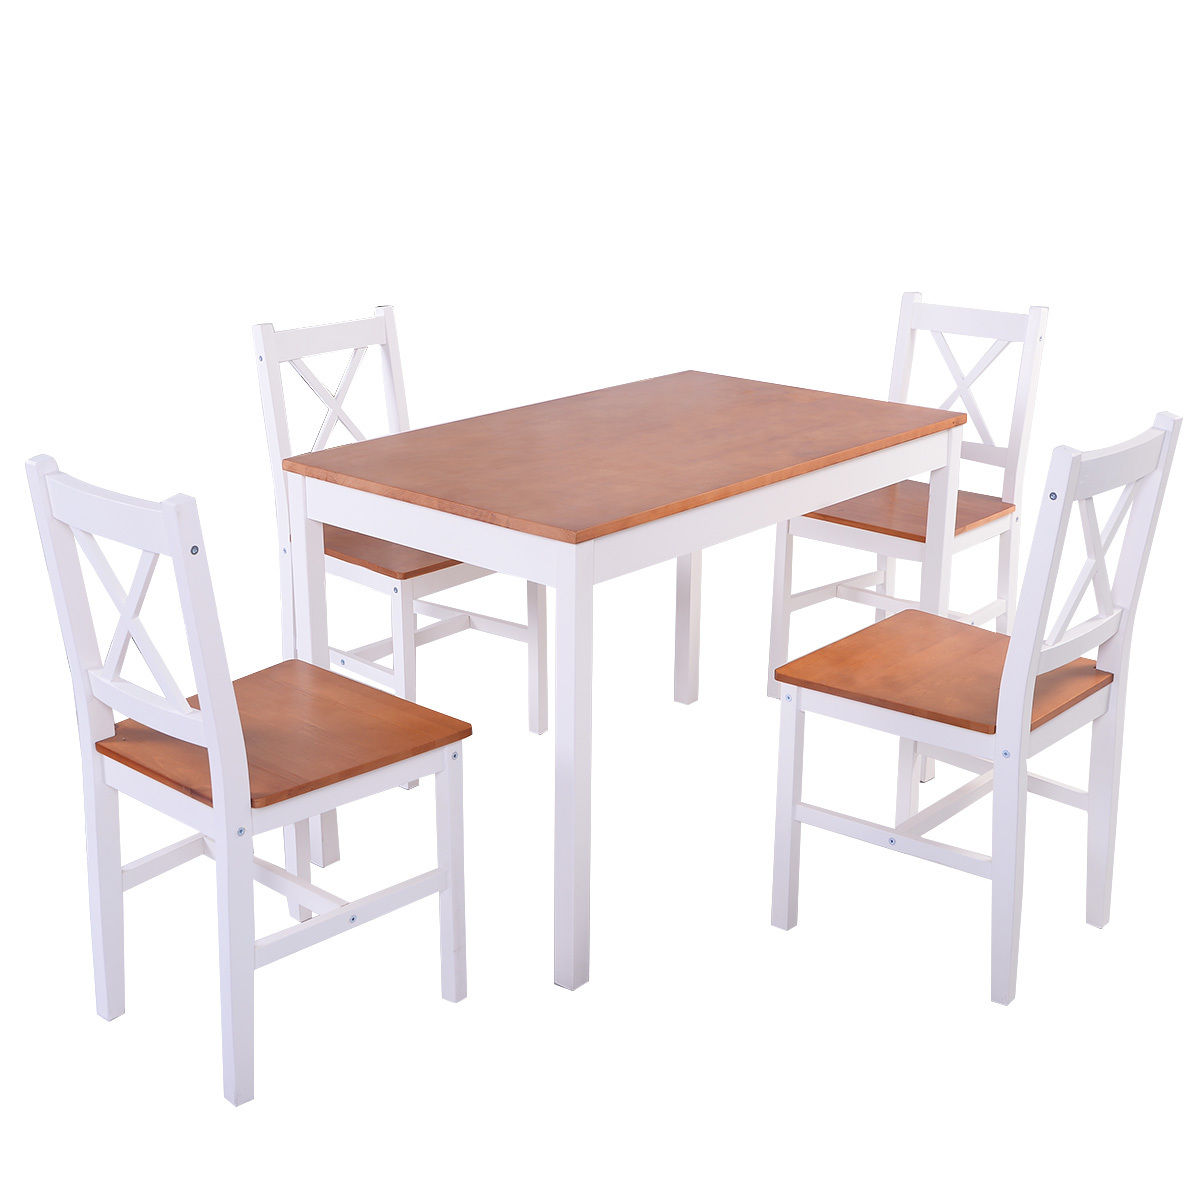 Dining table sets 4 chairs - Costway 5pcs Pine Wood Dinette Dining Set Table And 4 Chairs Home Kitchen Furniture Walmart Com